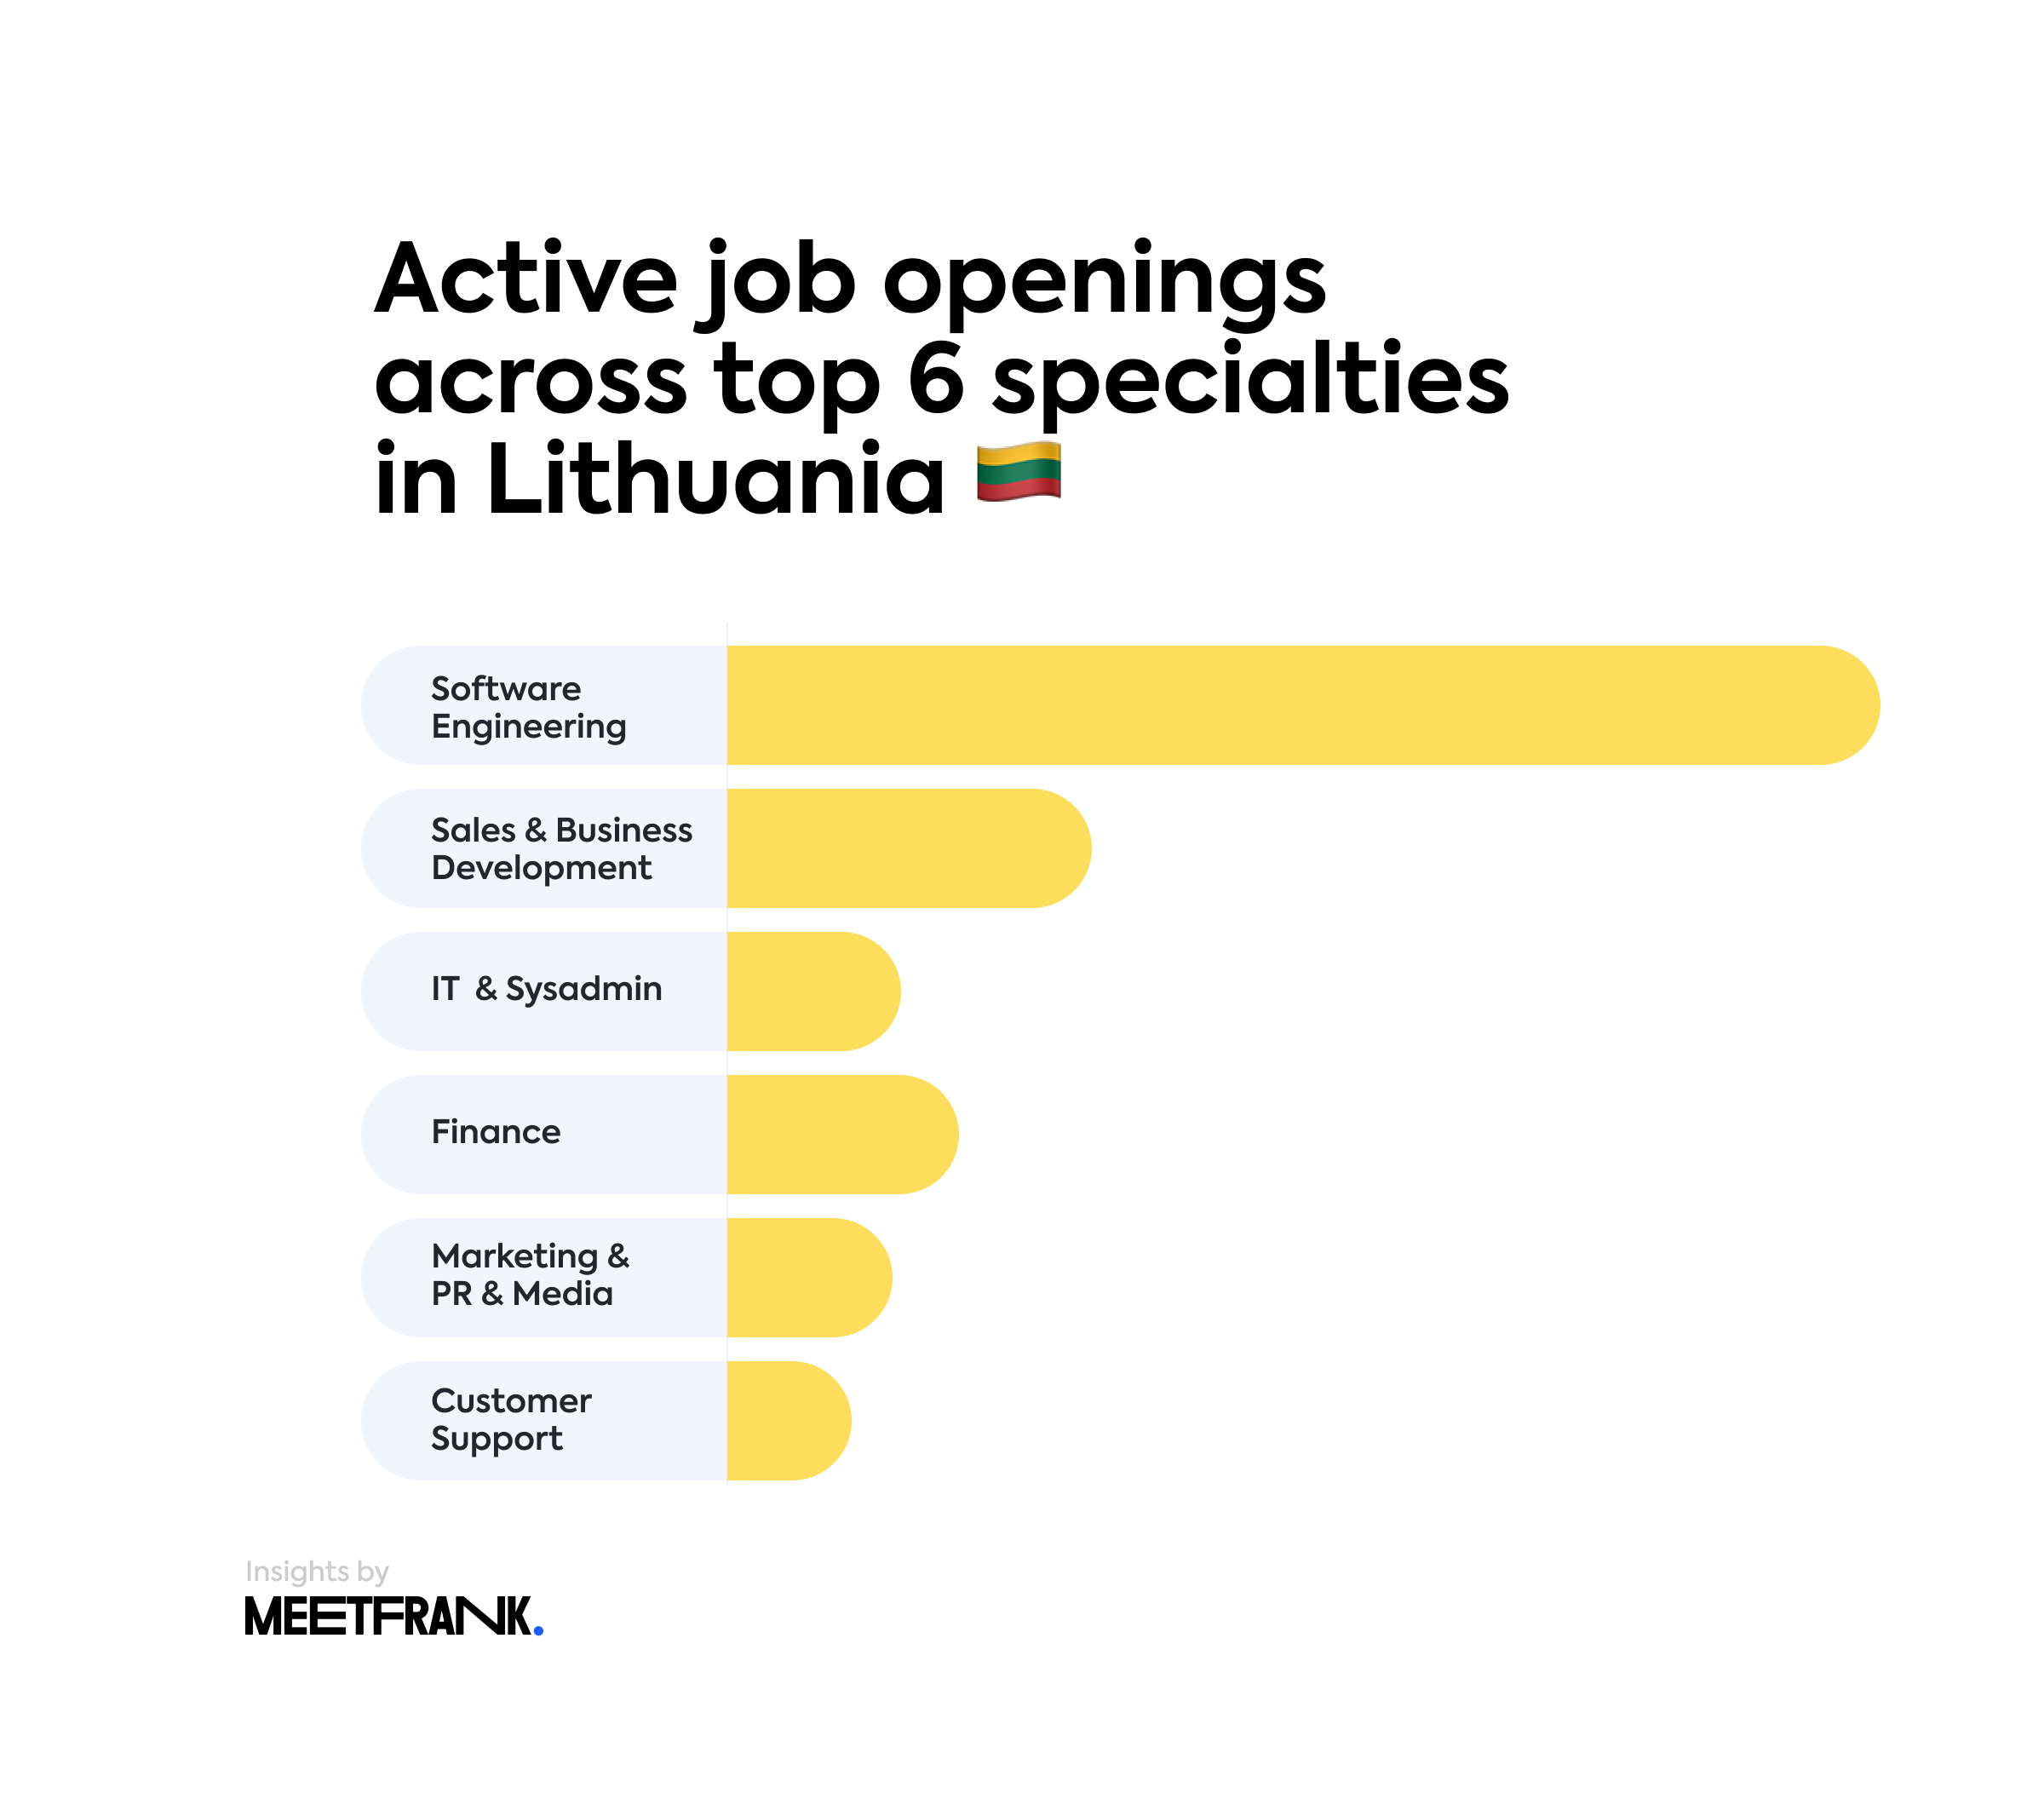 Active job openings across top 6 specialties Lithuania